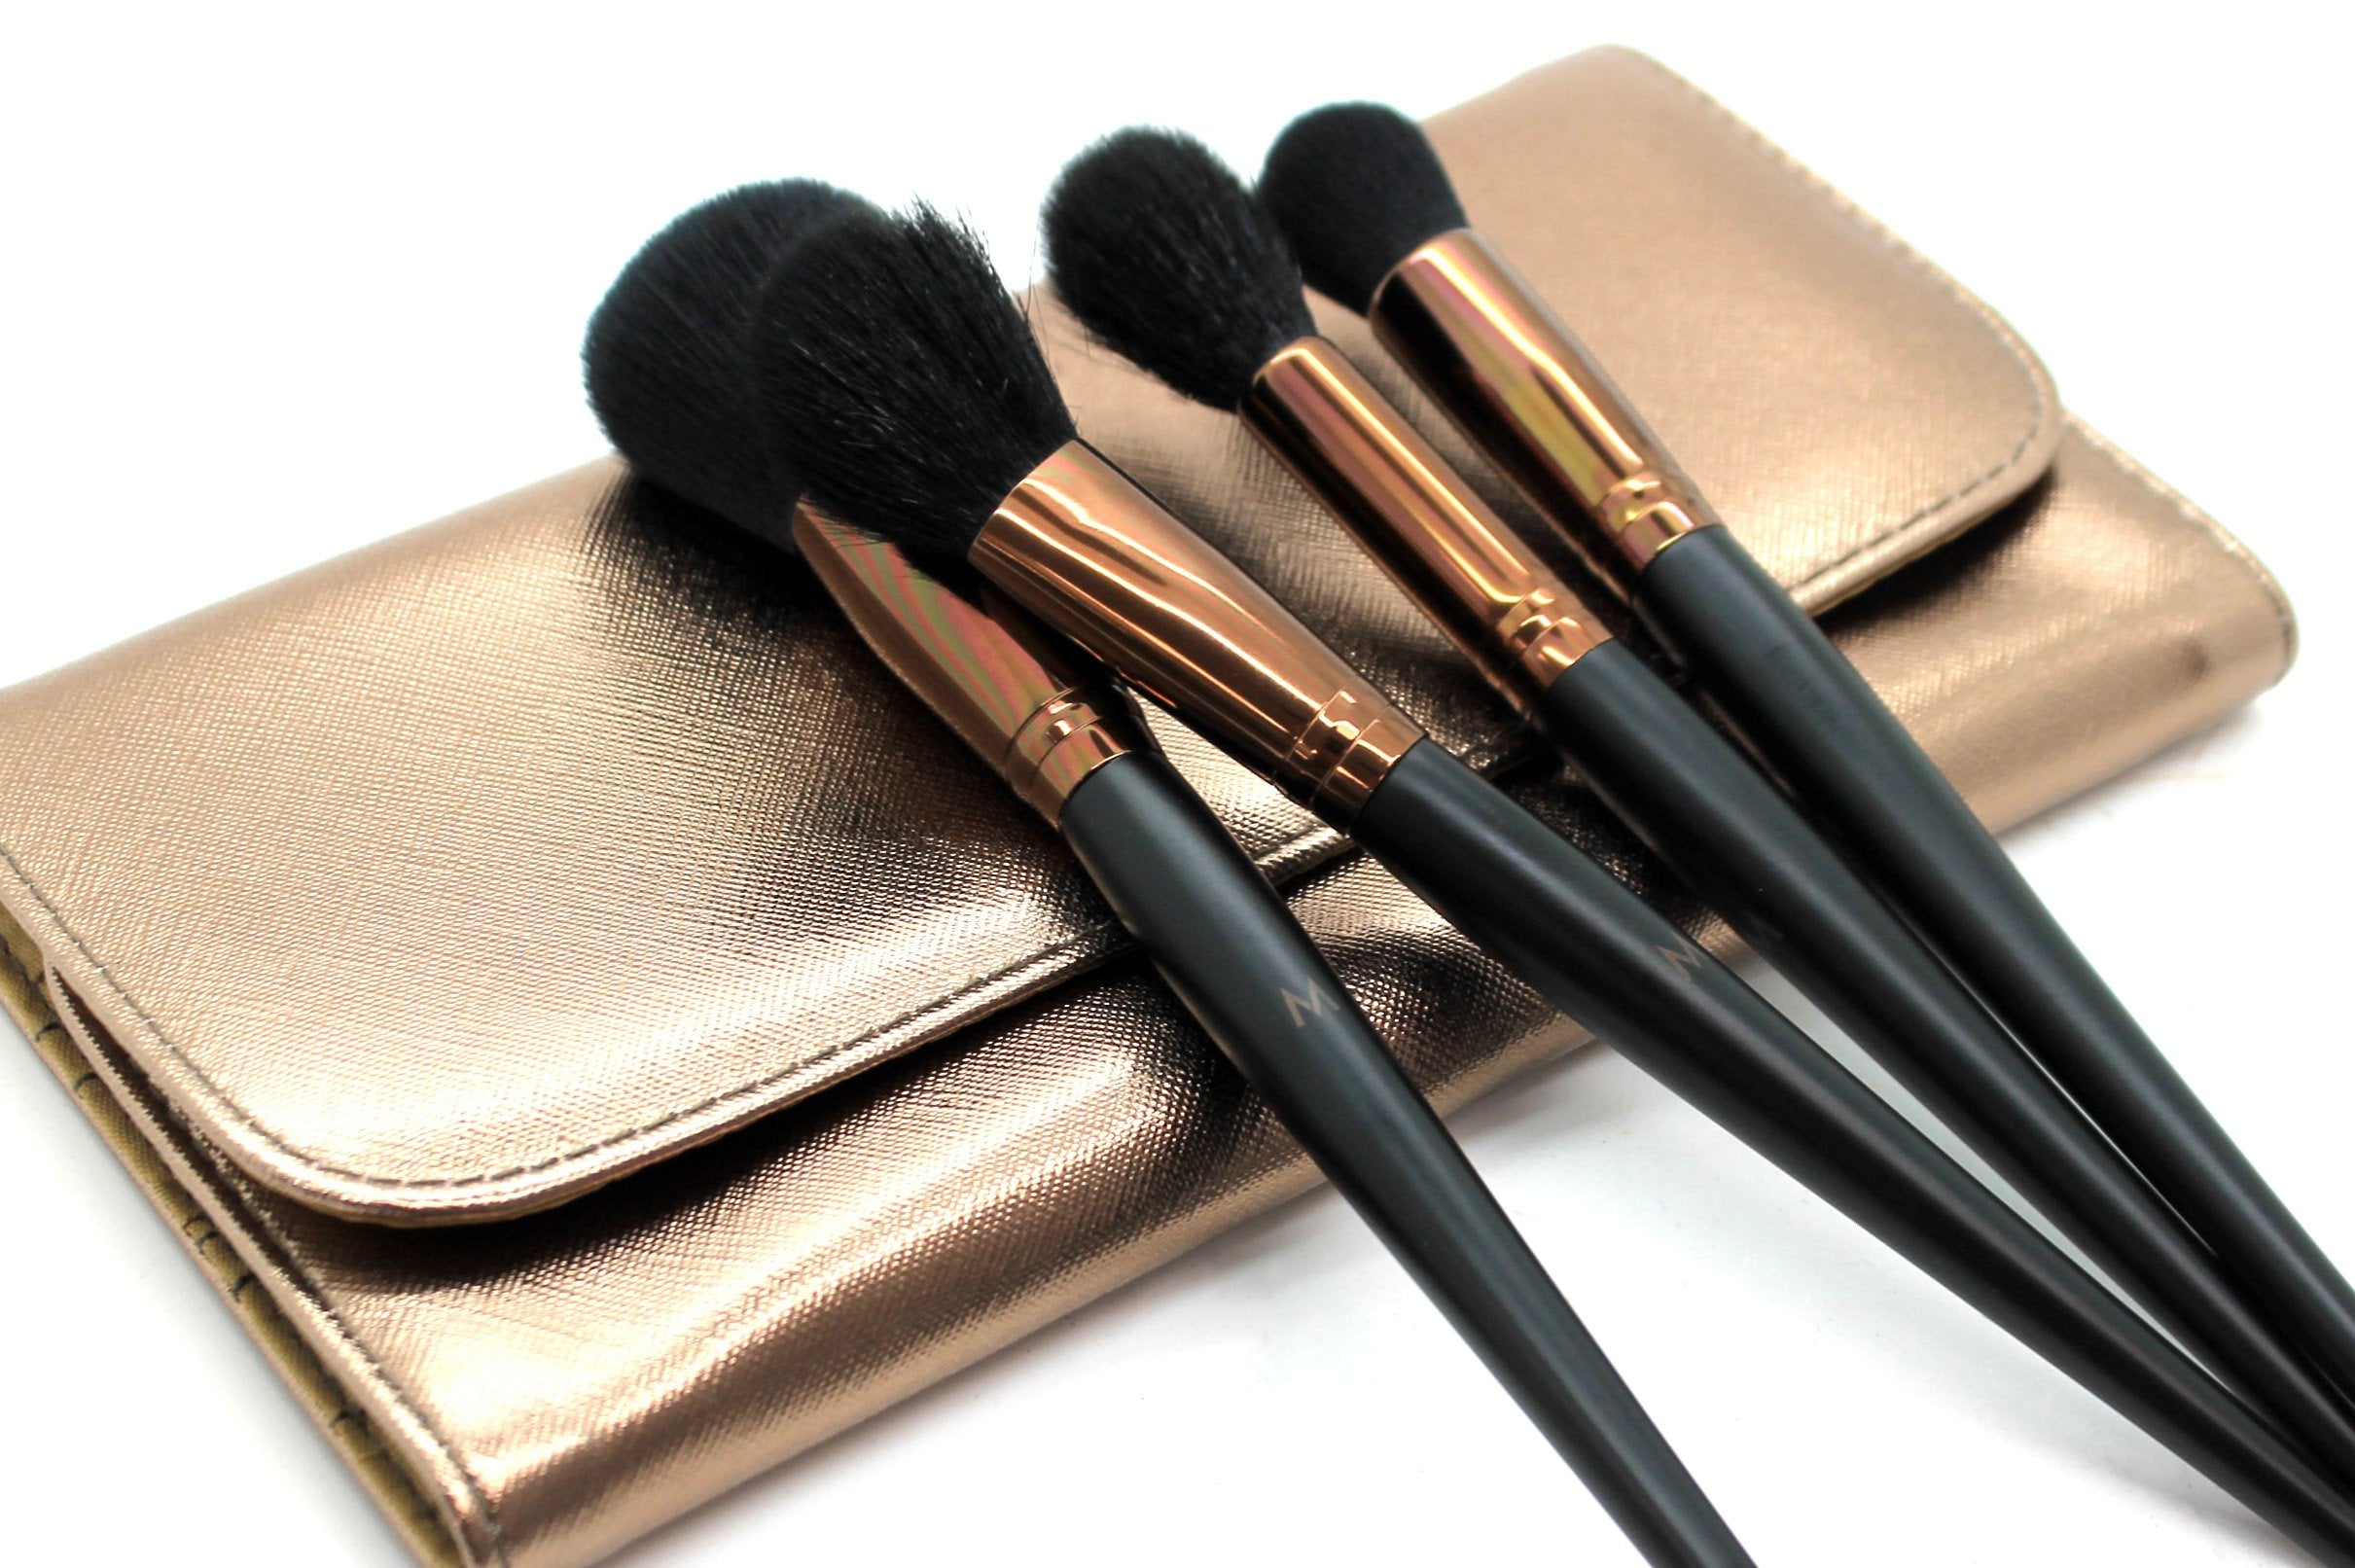 4 Piece Make Up Brush Set